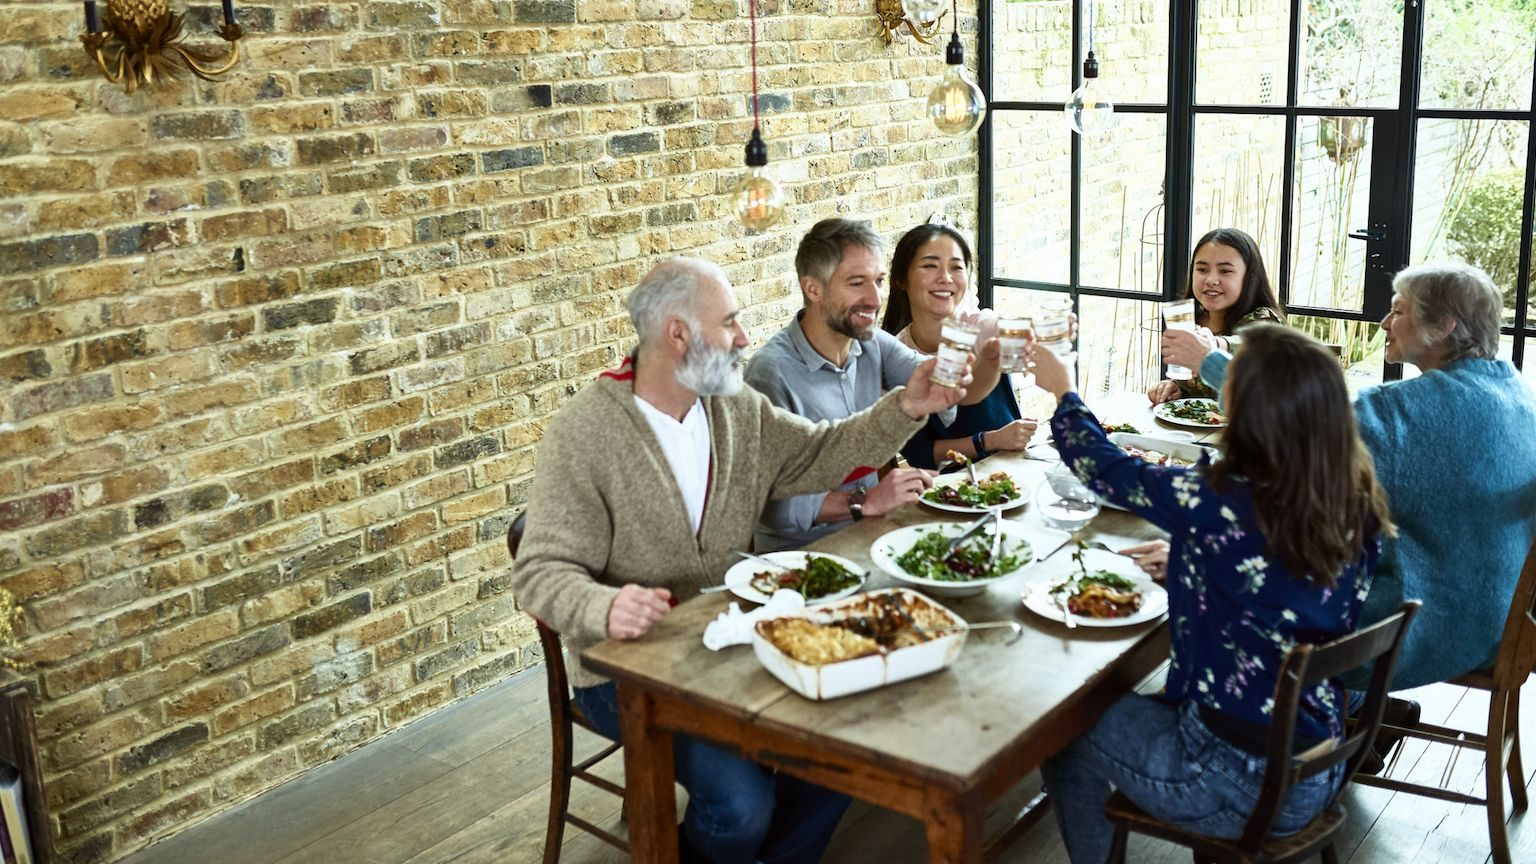 A family eating a meal together at a dining table.